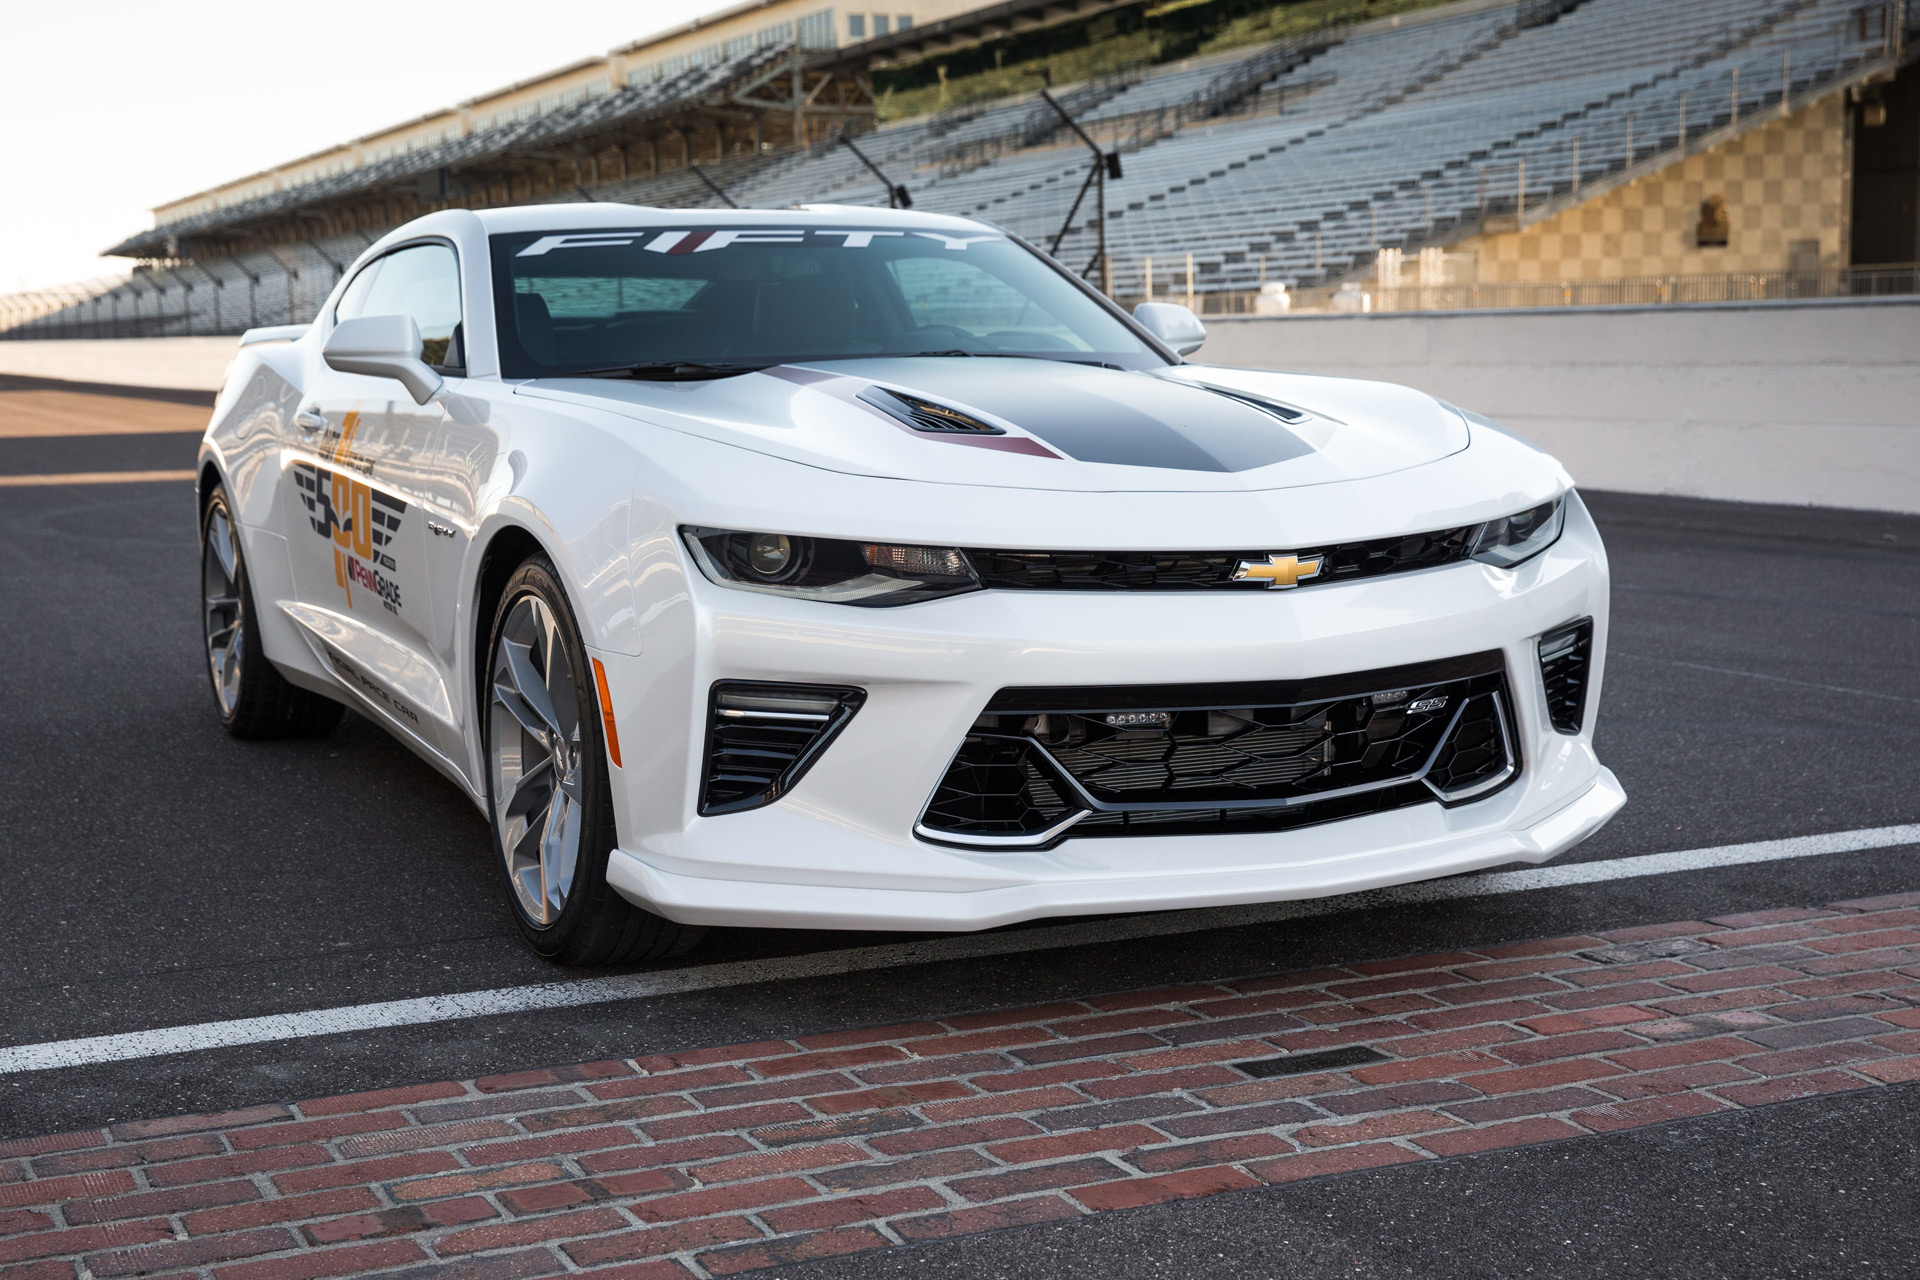 Honda Accord Concept 2018 >> 50th Anniversary Camaro SS named official pace car of 2016 Indy 500